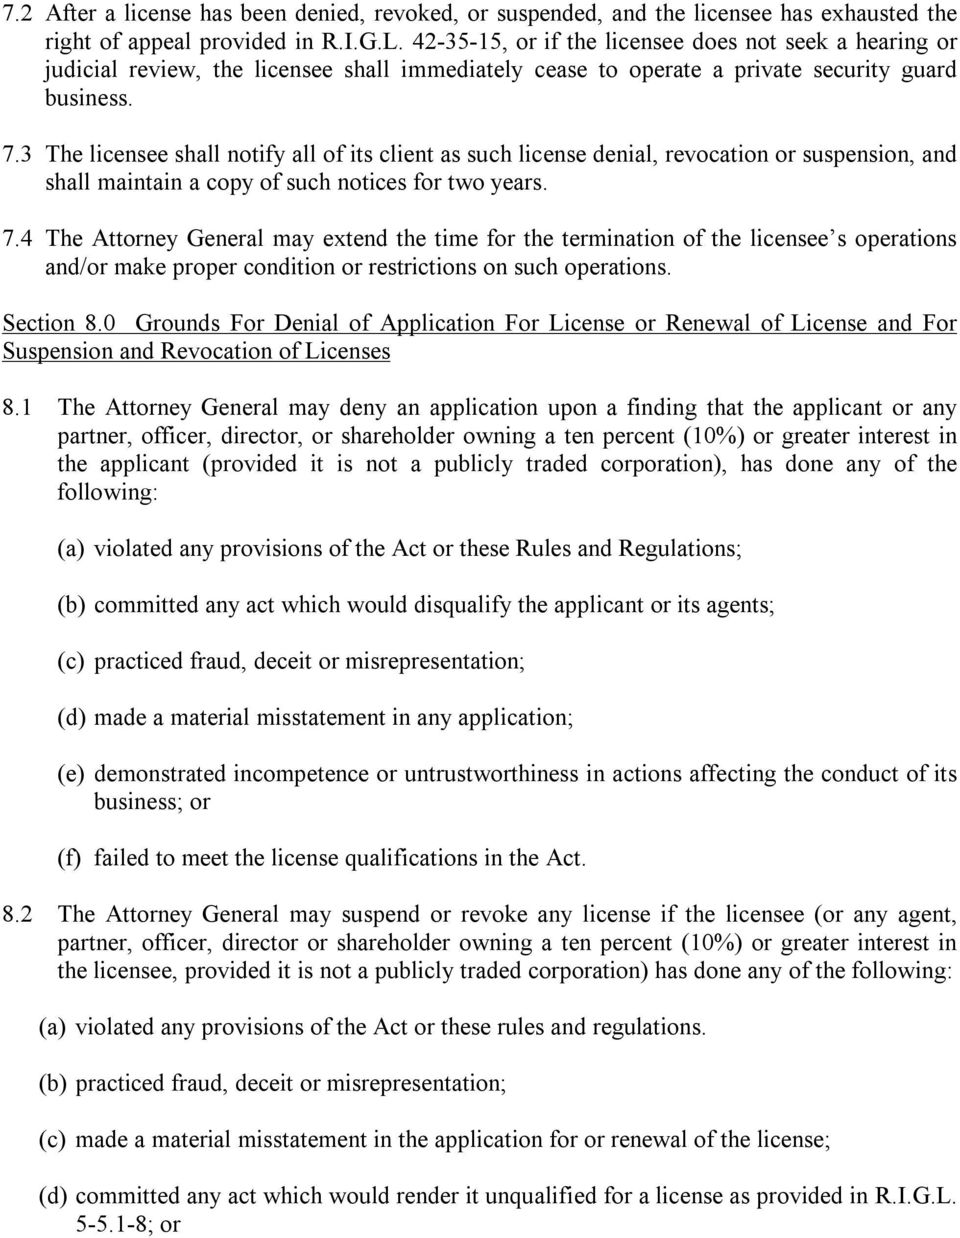 3 The licensee shall notify all of its client as such license denial, revocation or suspension, and shall maintain a copy of such notices for two years. 7.